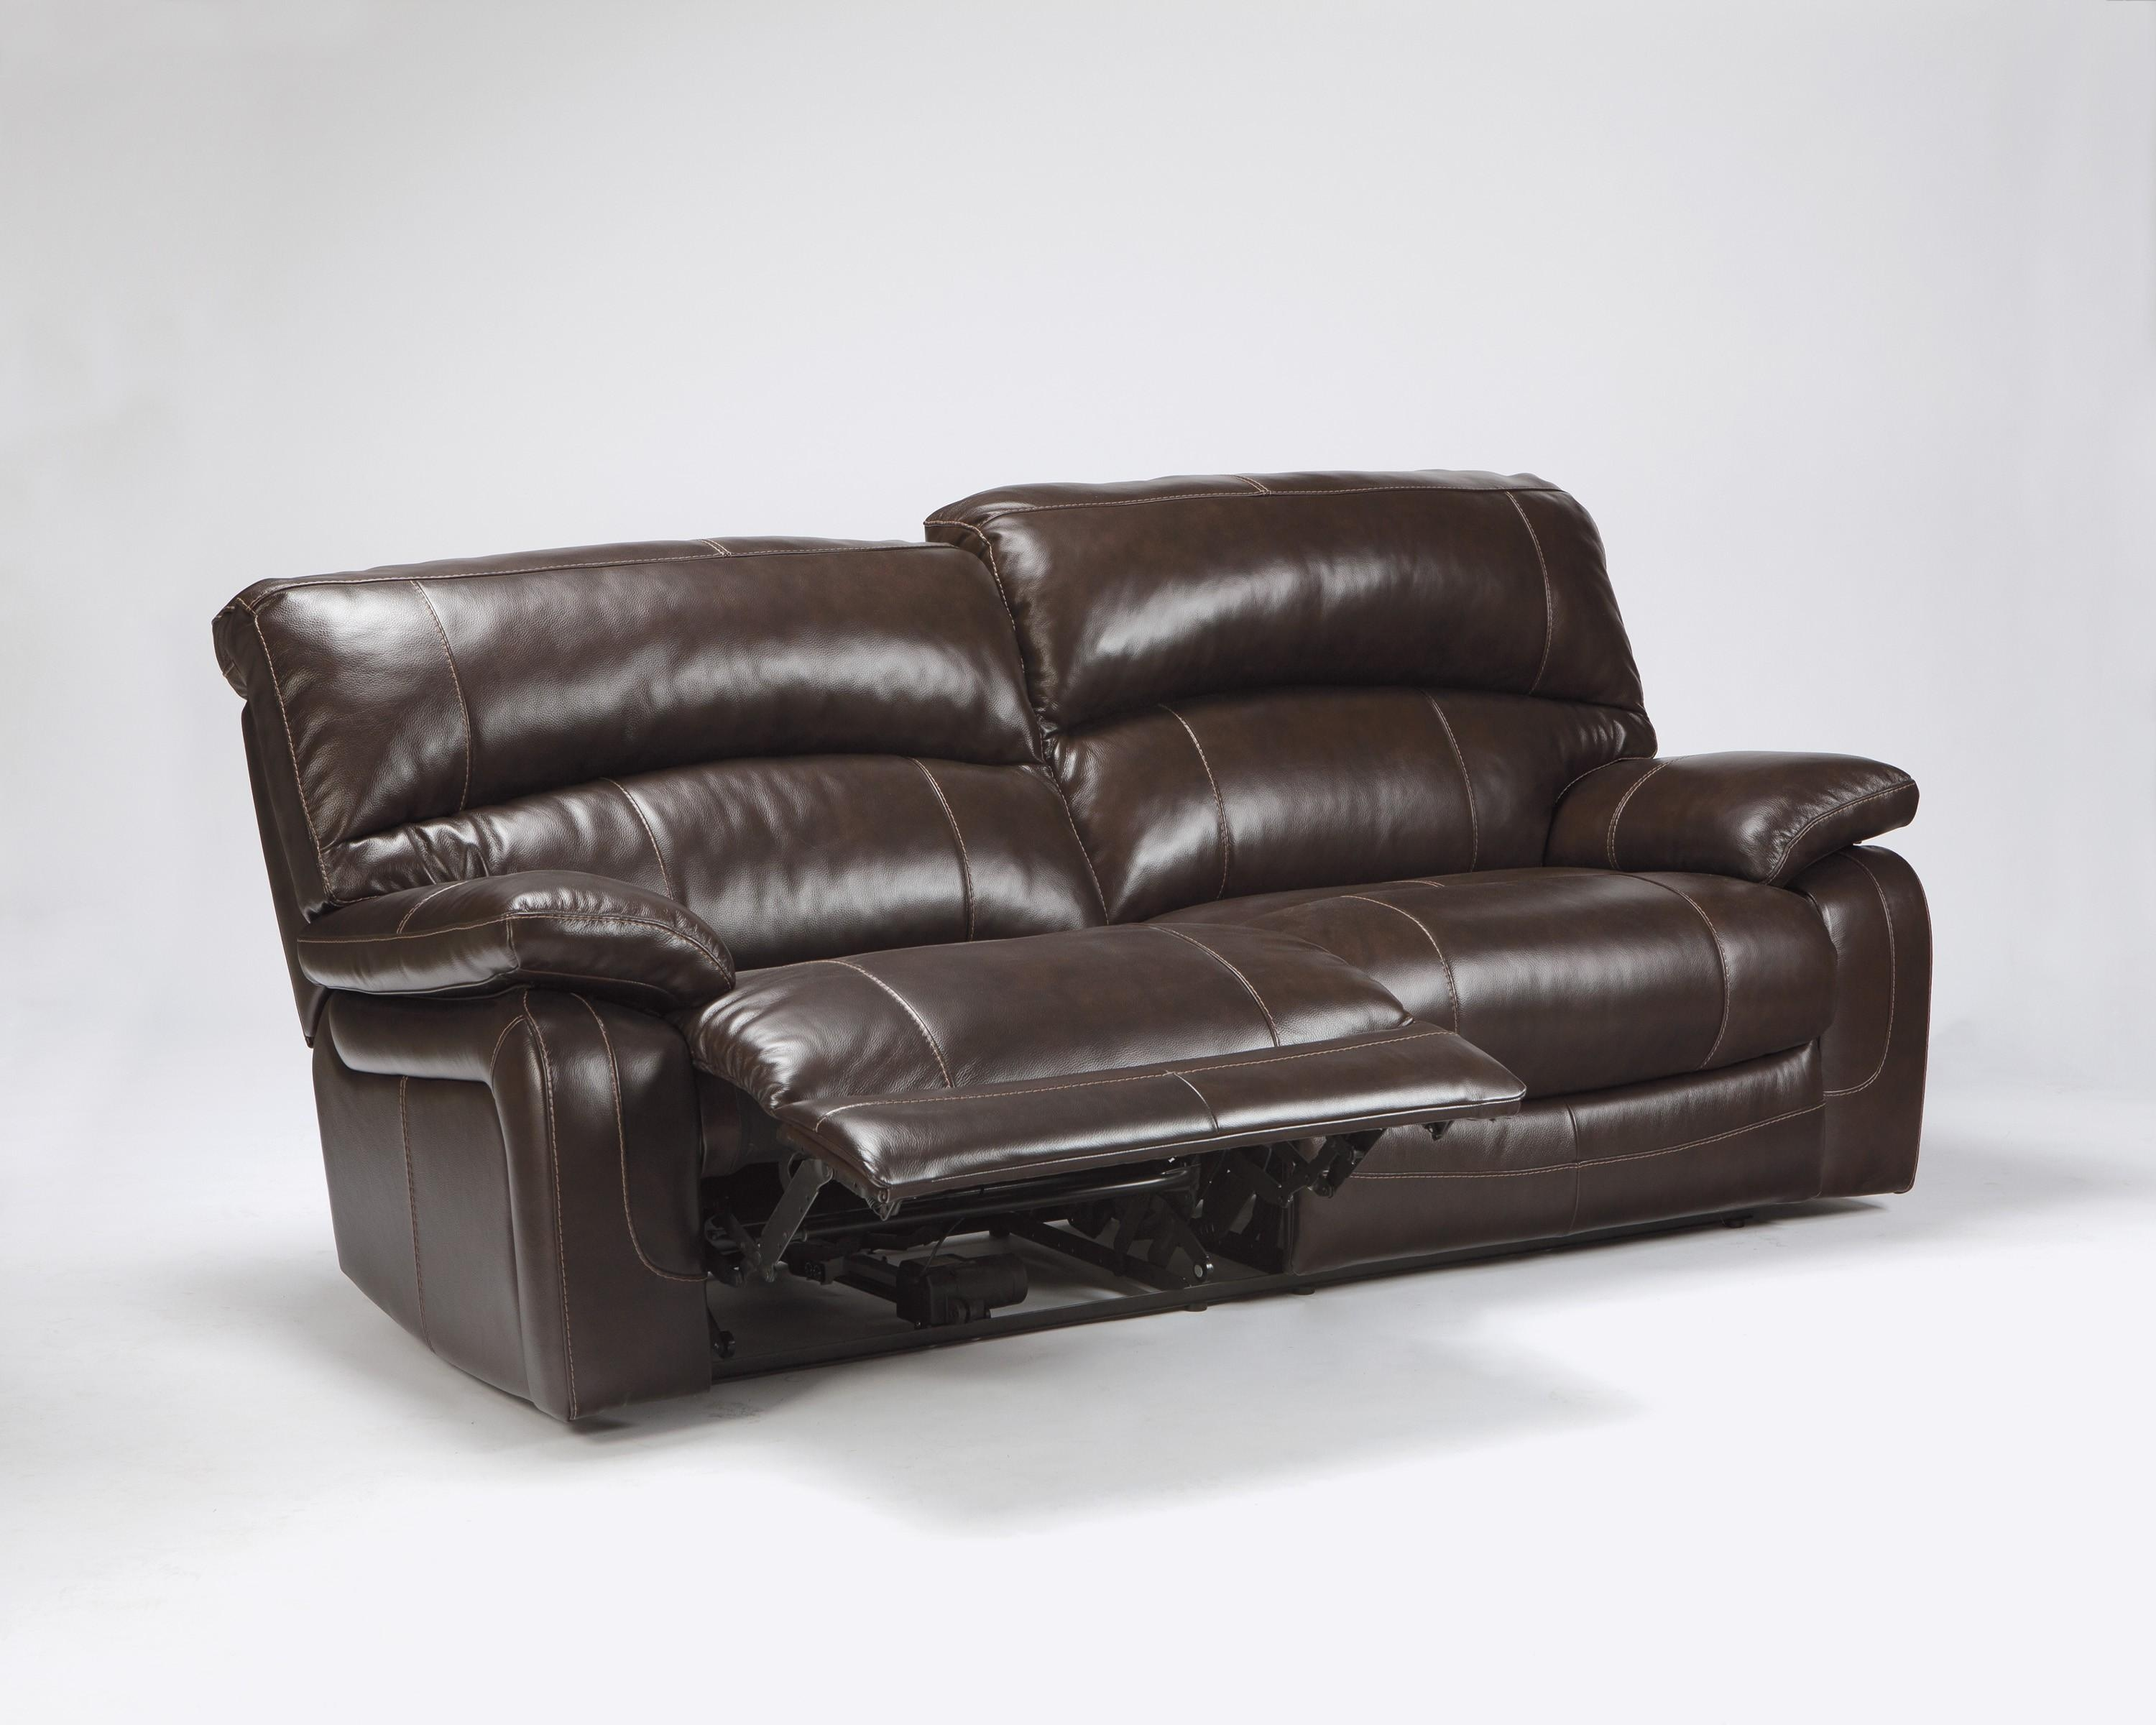 Buy Damacio – Dark Brown Two Seat Reclining Power Sofa Regarding 2 Seater Recliner Leather Sofas (Image 6 of 20)